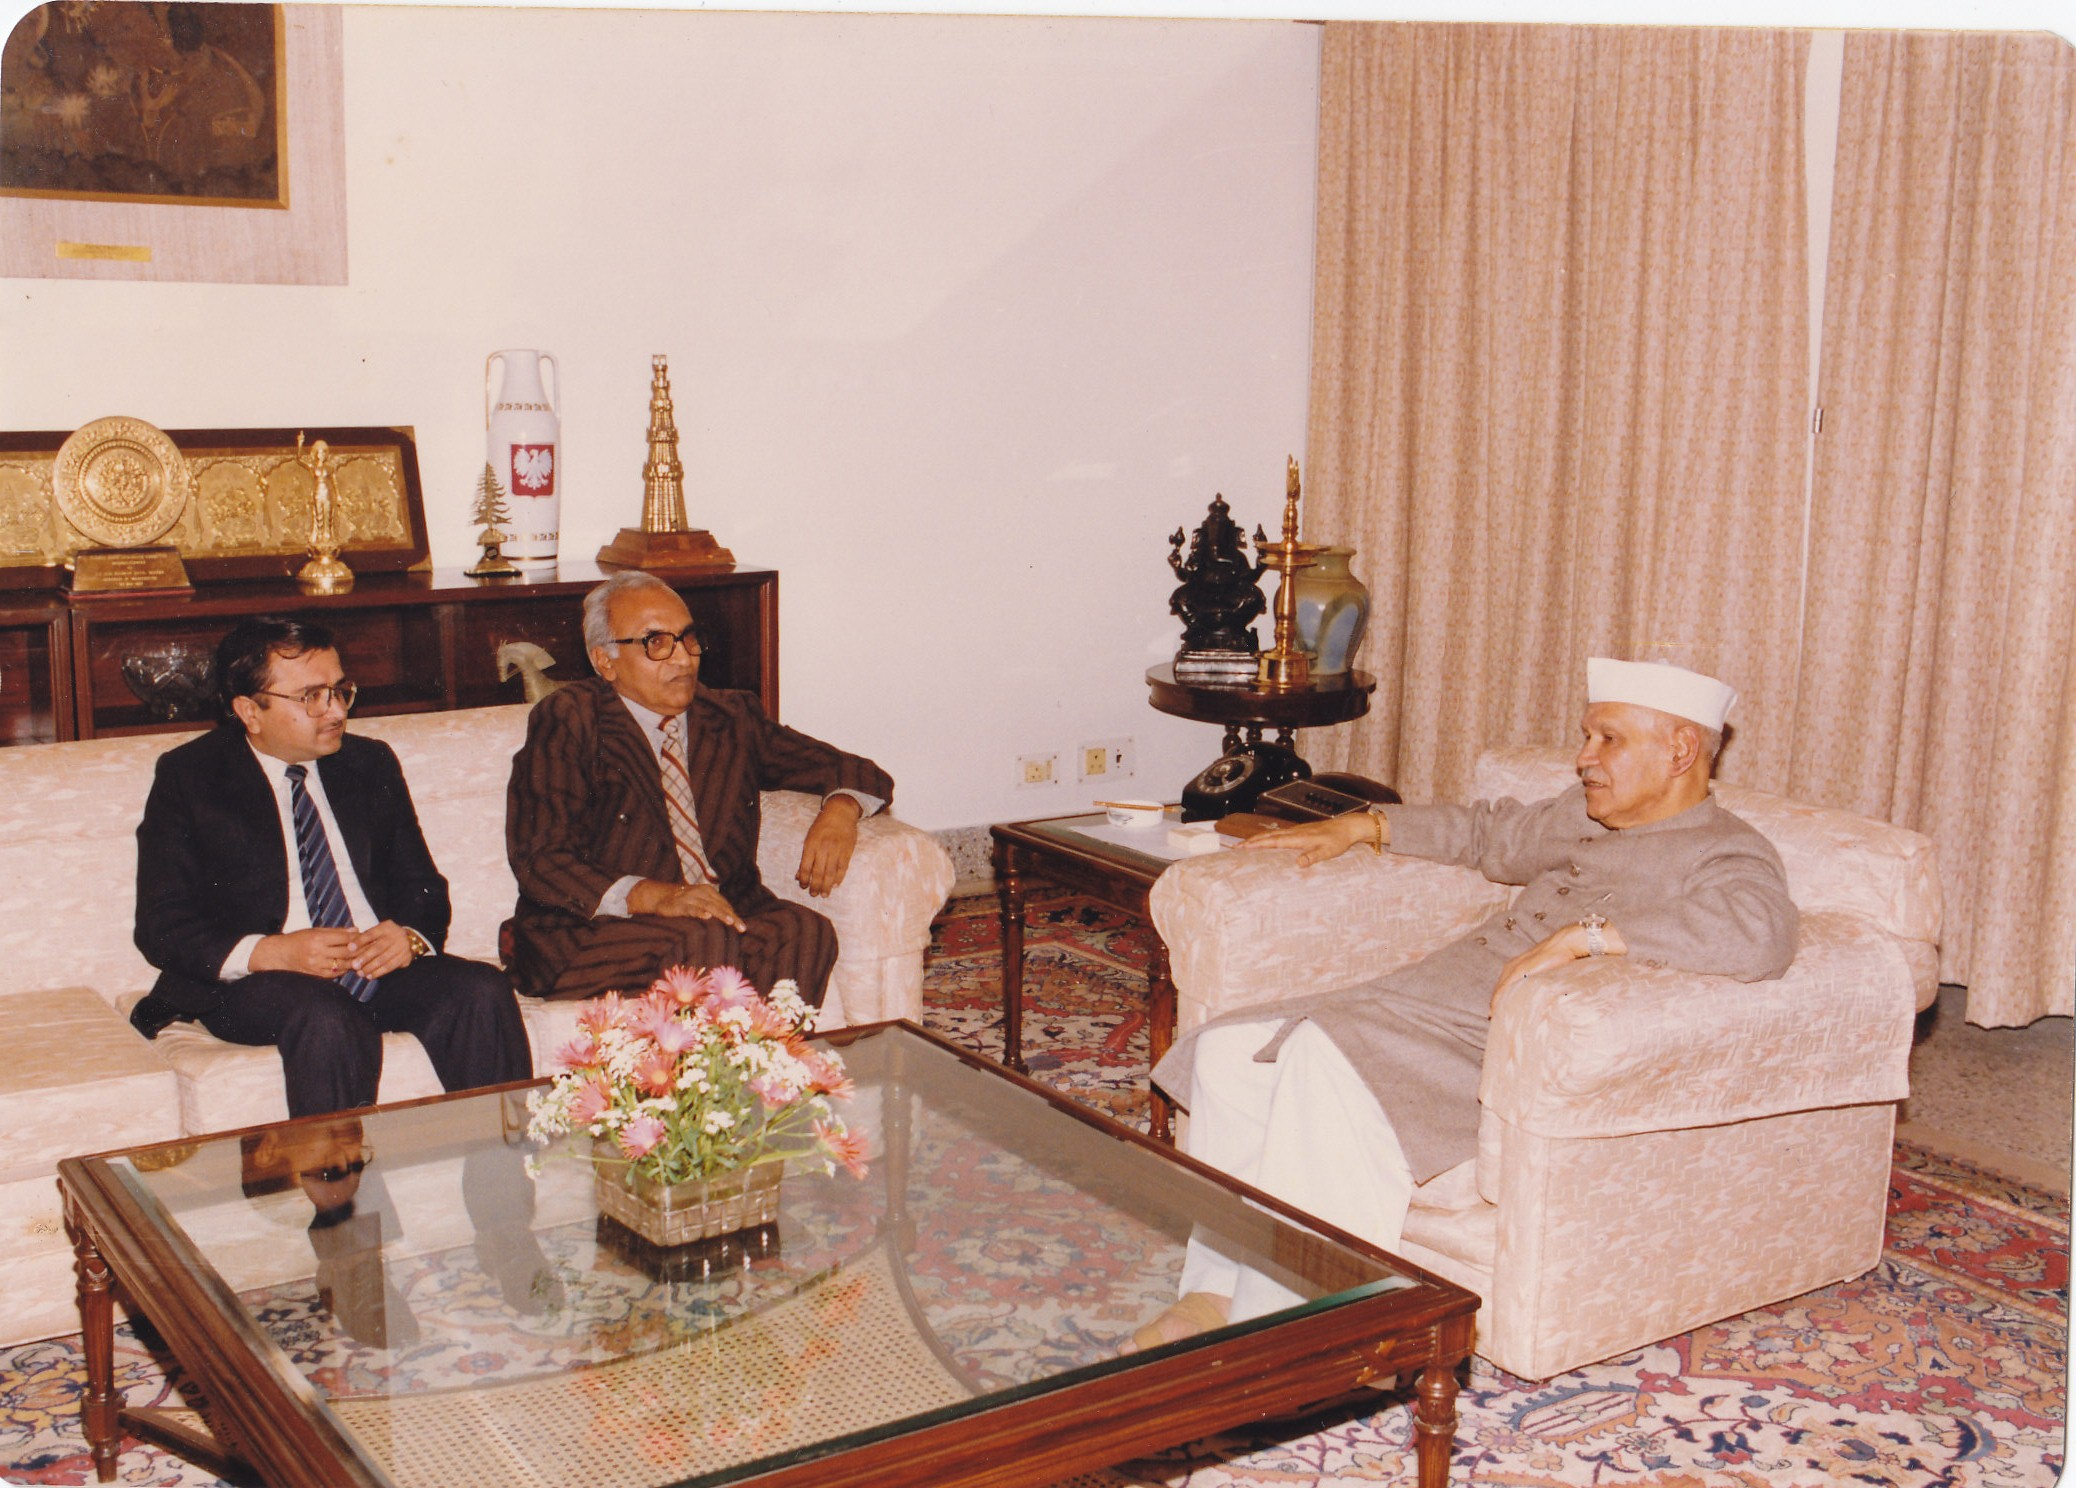 During a discussion with the then President of India- Dr. Shankar Dayal Sharma